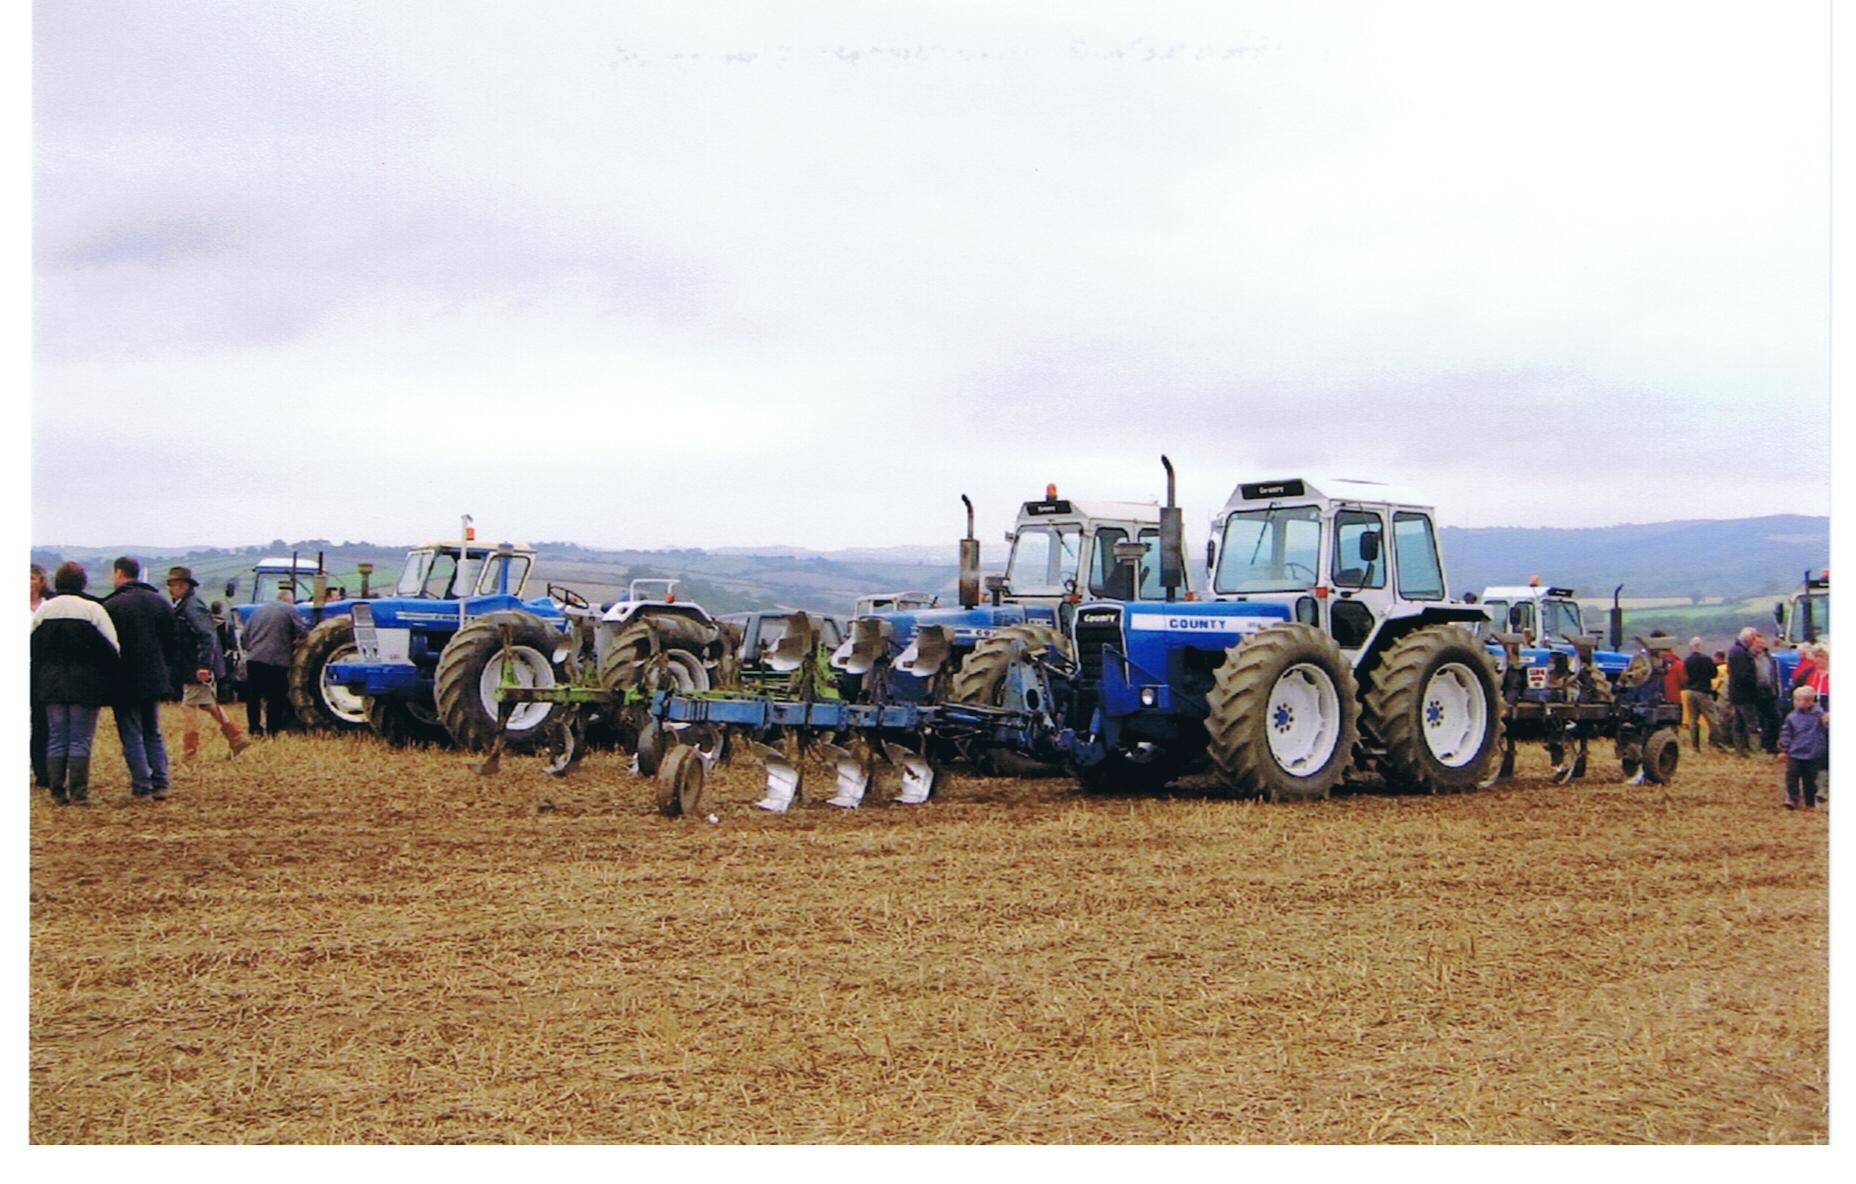 County Commercial tractors on show